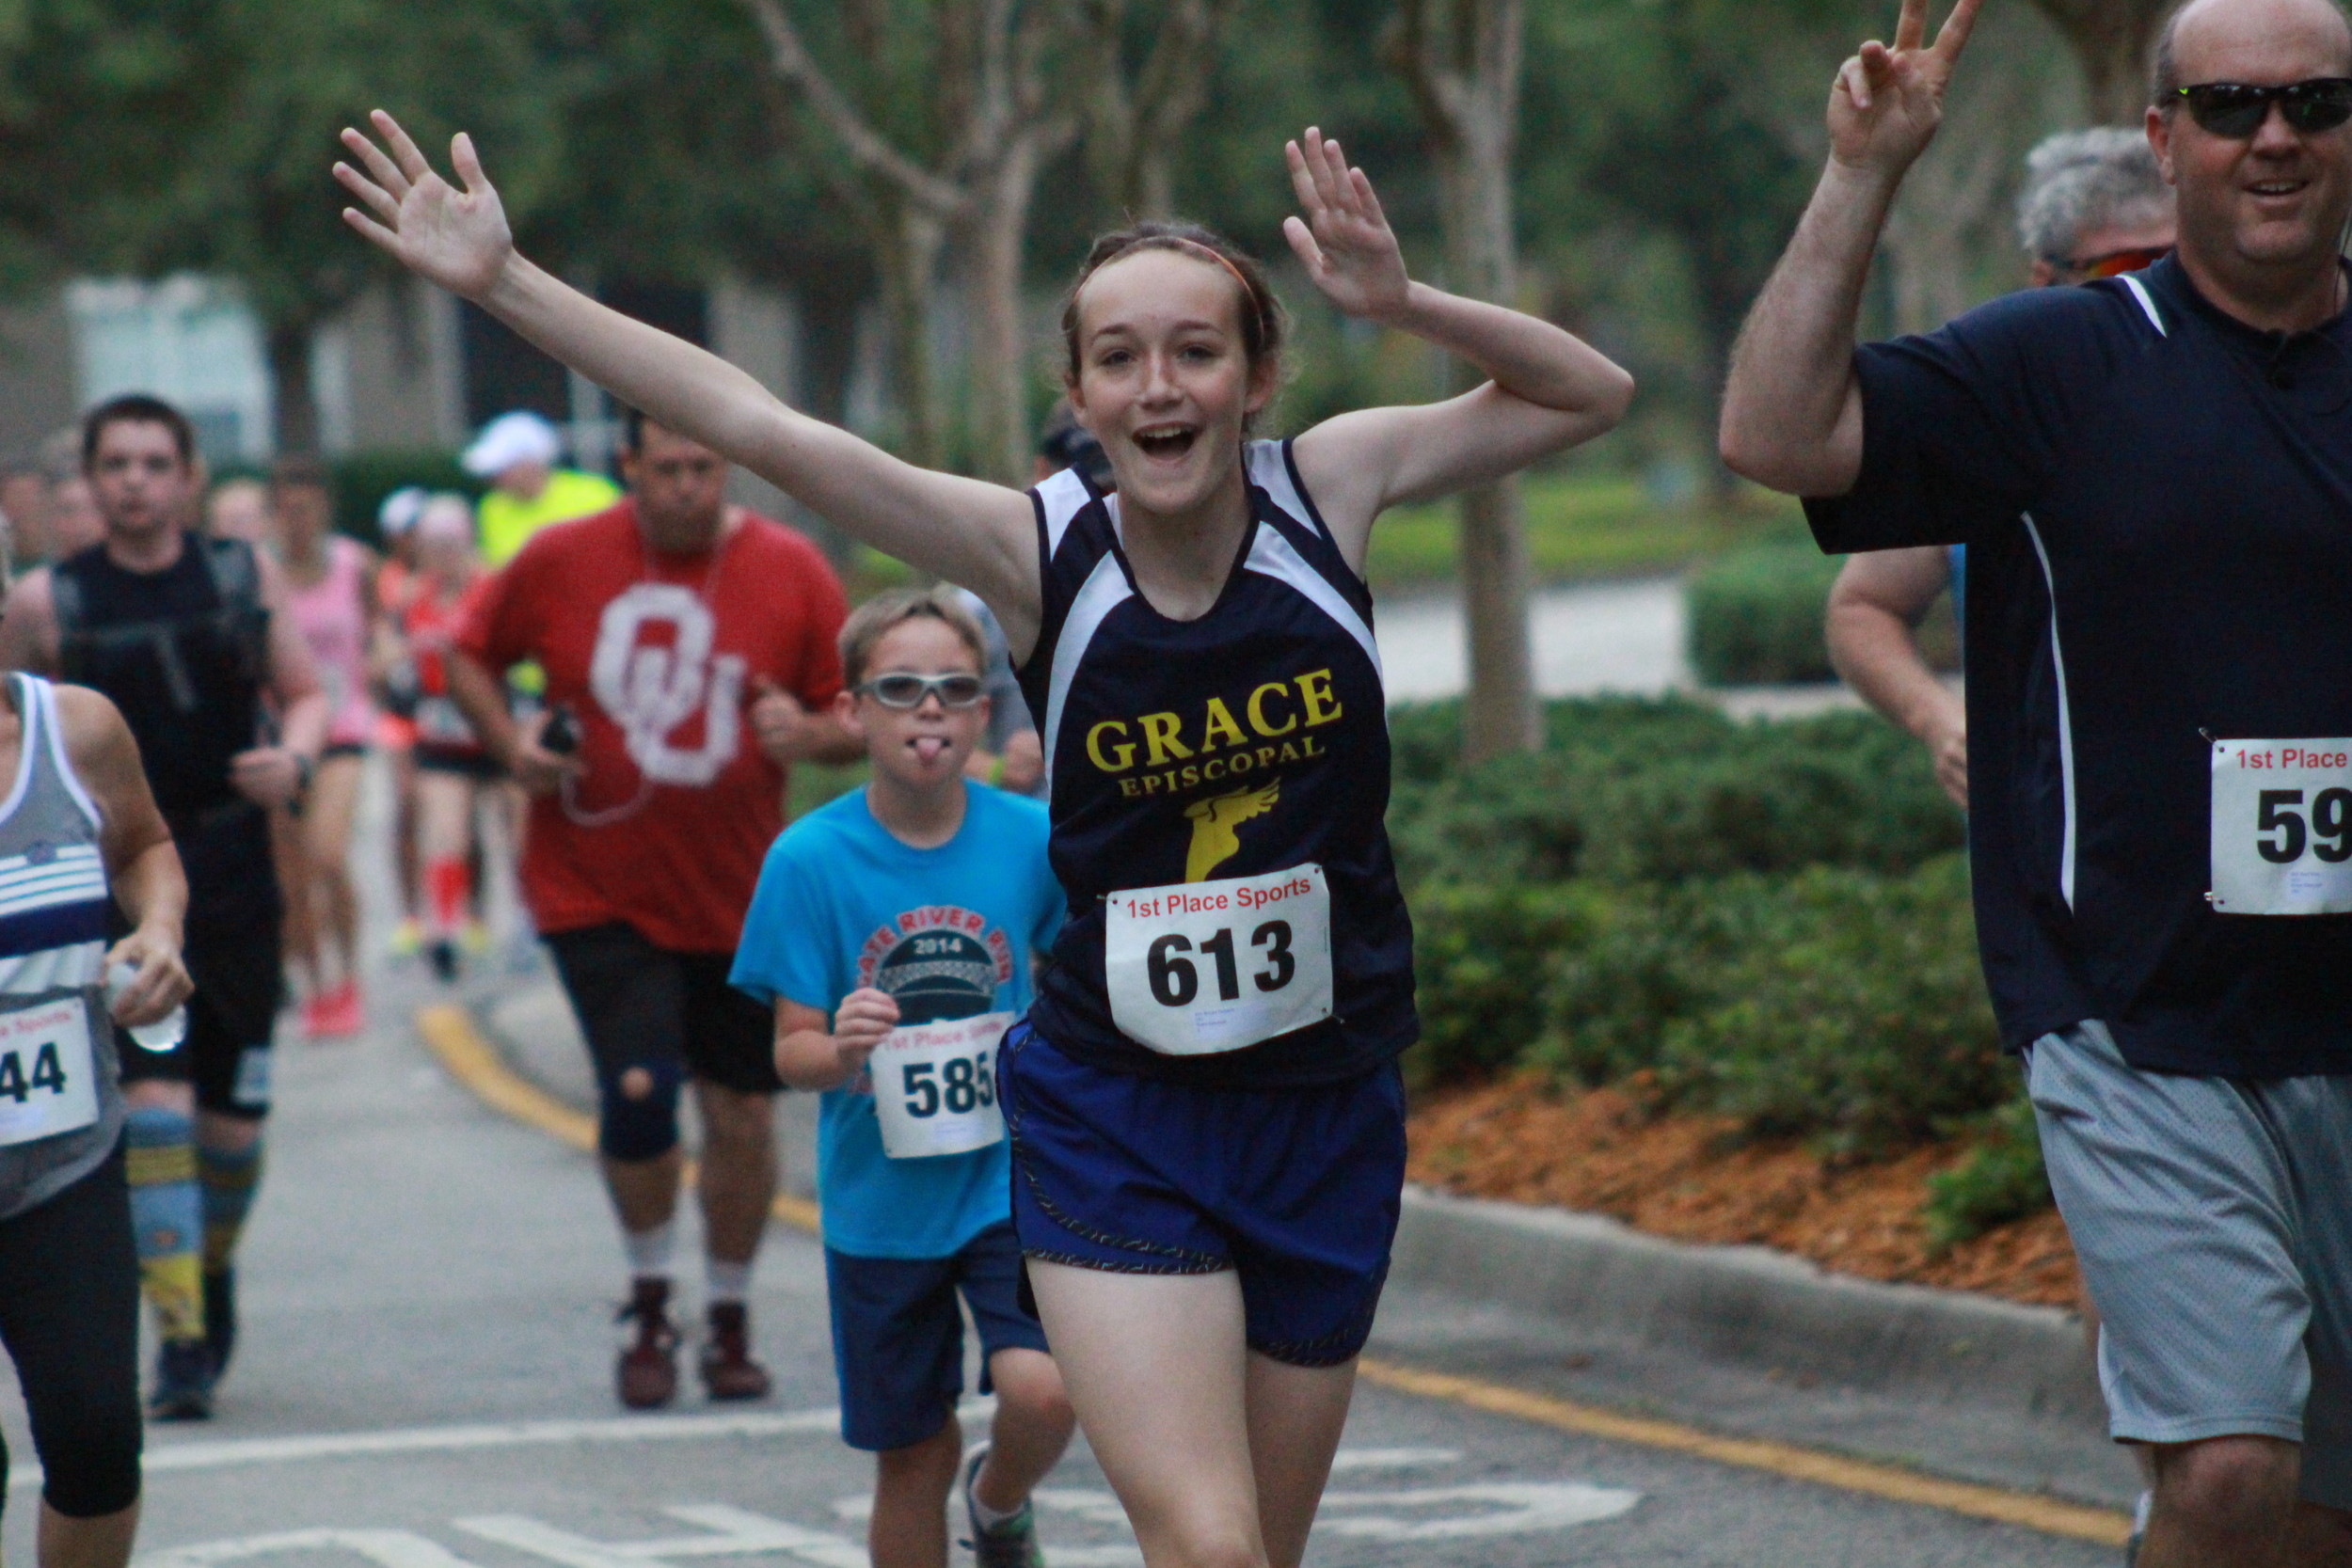 Grace Episcopal runner Brooke Remolde smiles at the one mile mark.